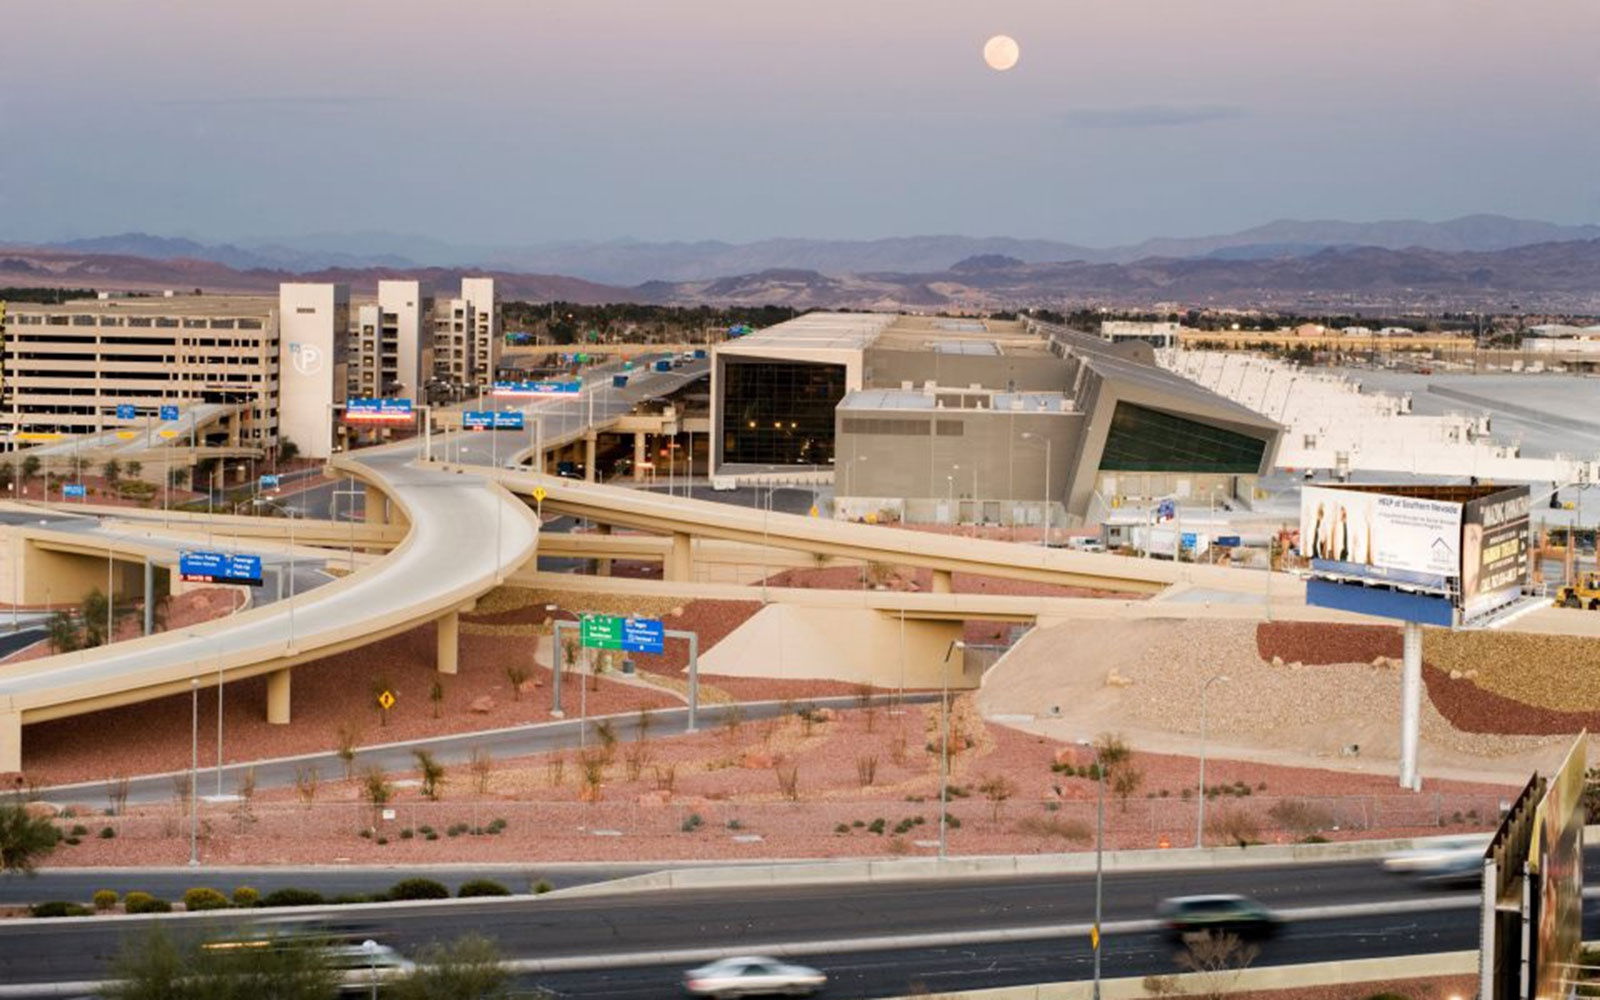 2. McCarran International Airport in Las Vegas